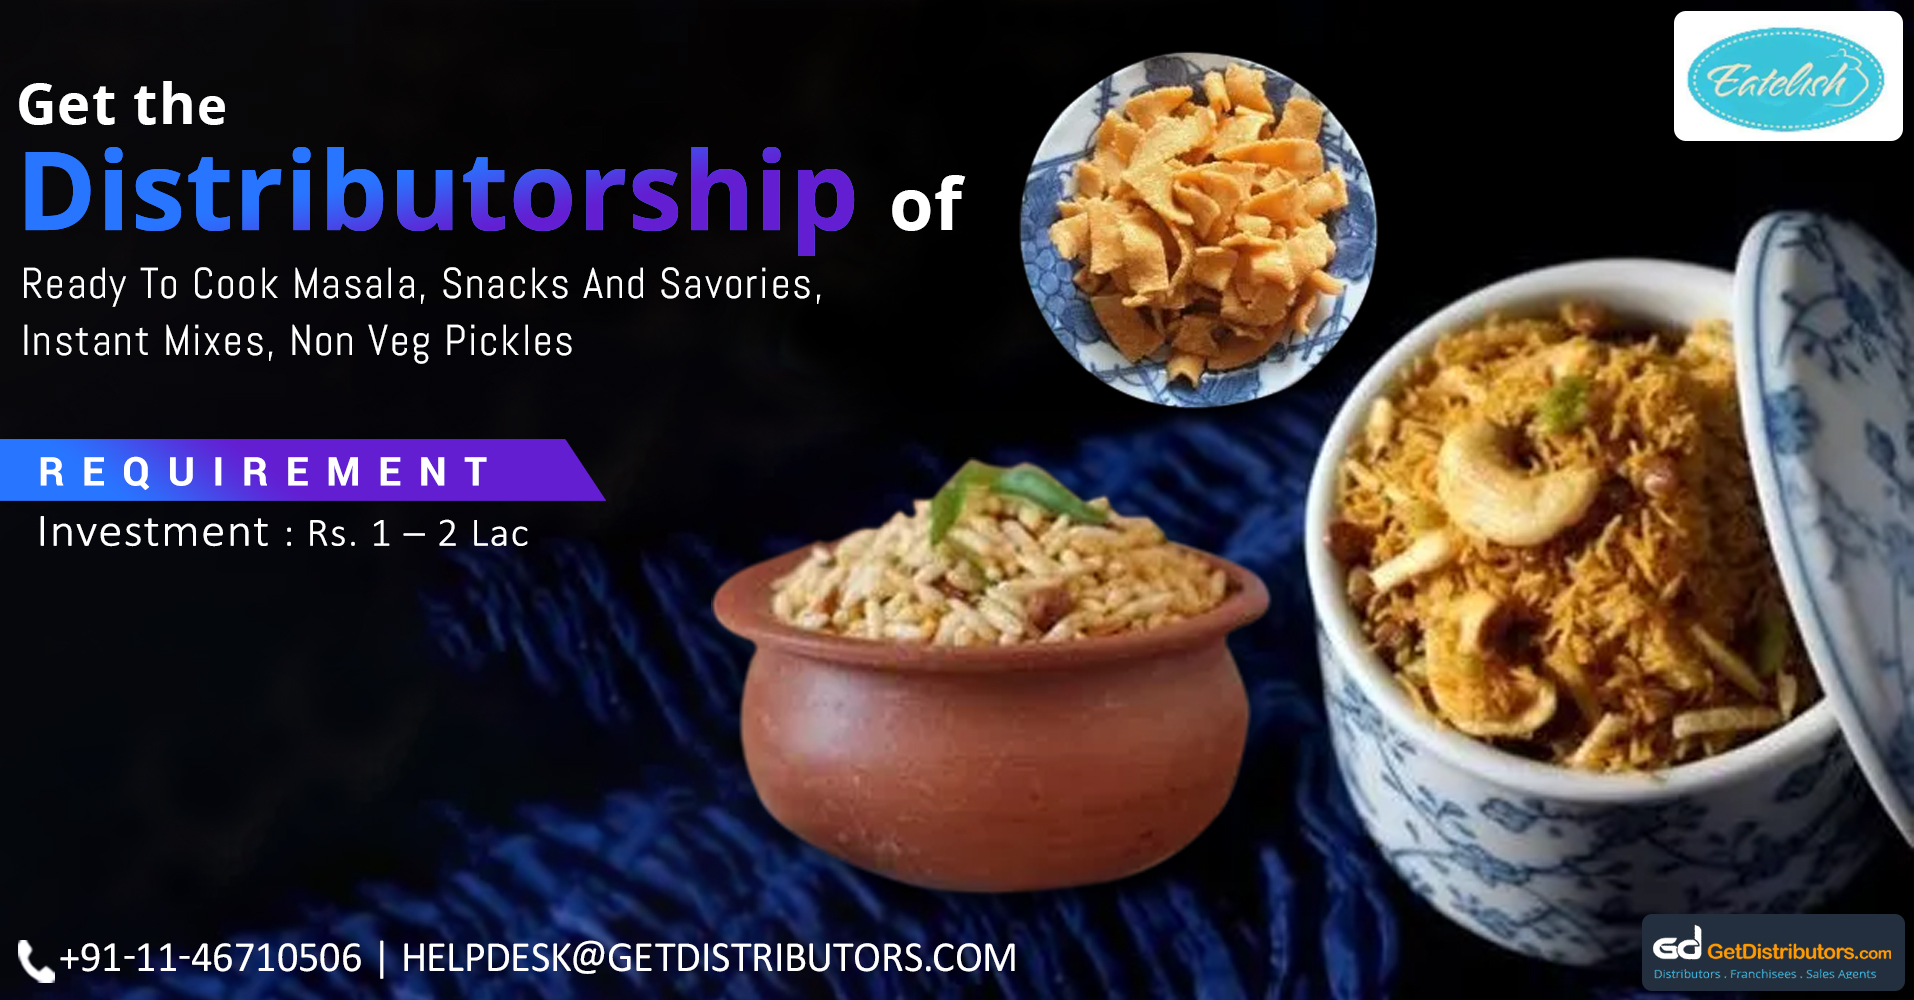 Offering Pure & Authentic Food Items At The Pocket-Friendly Price